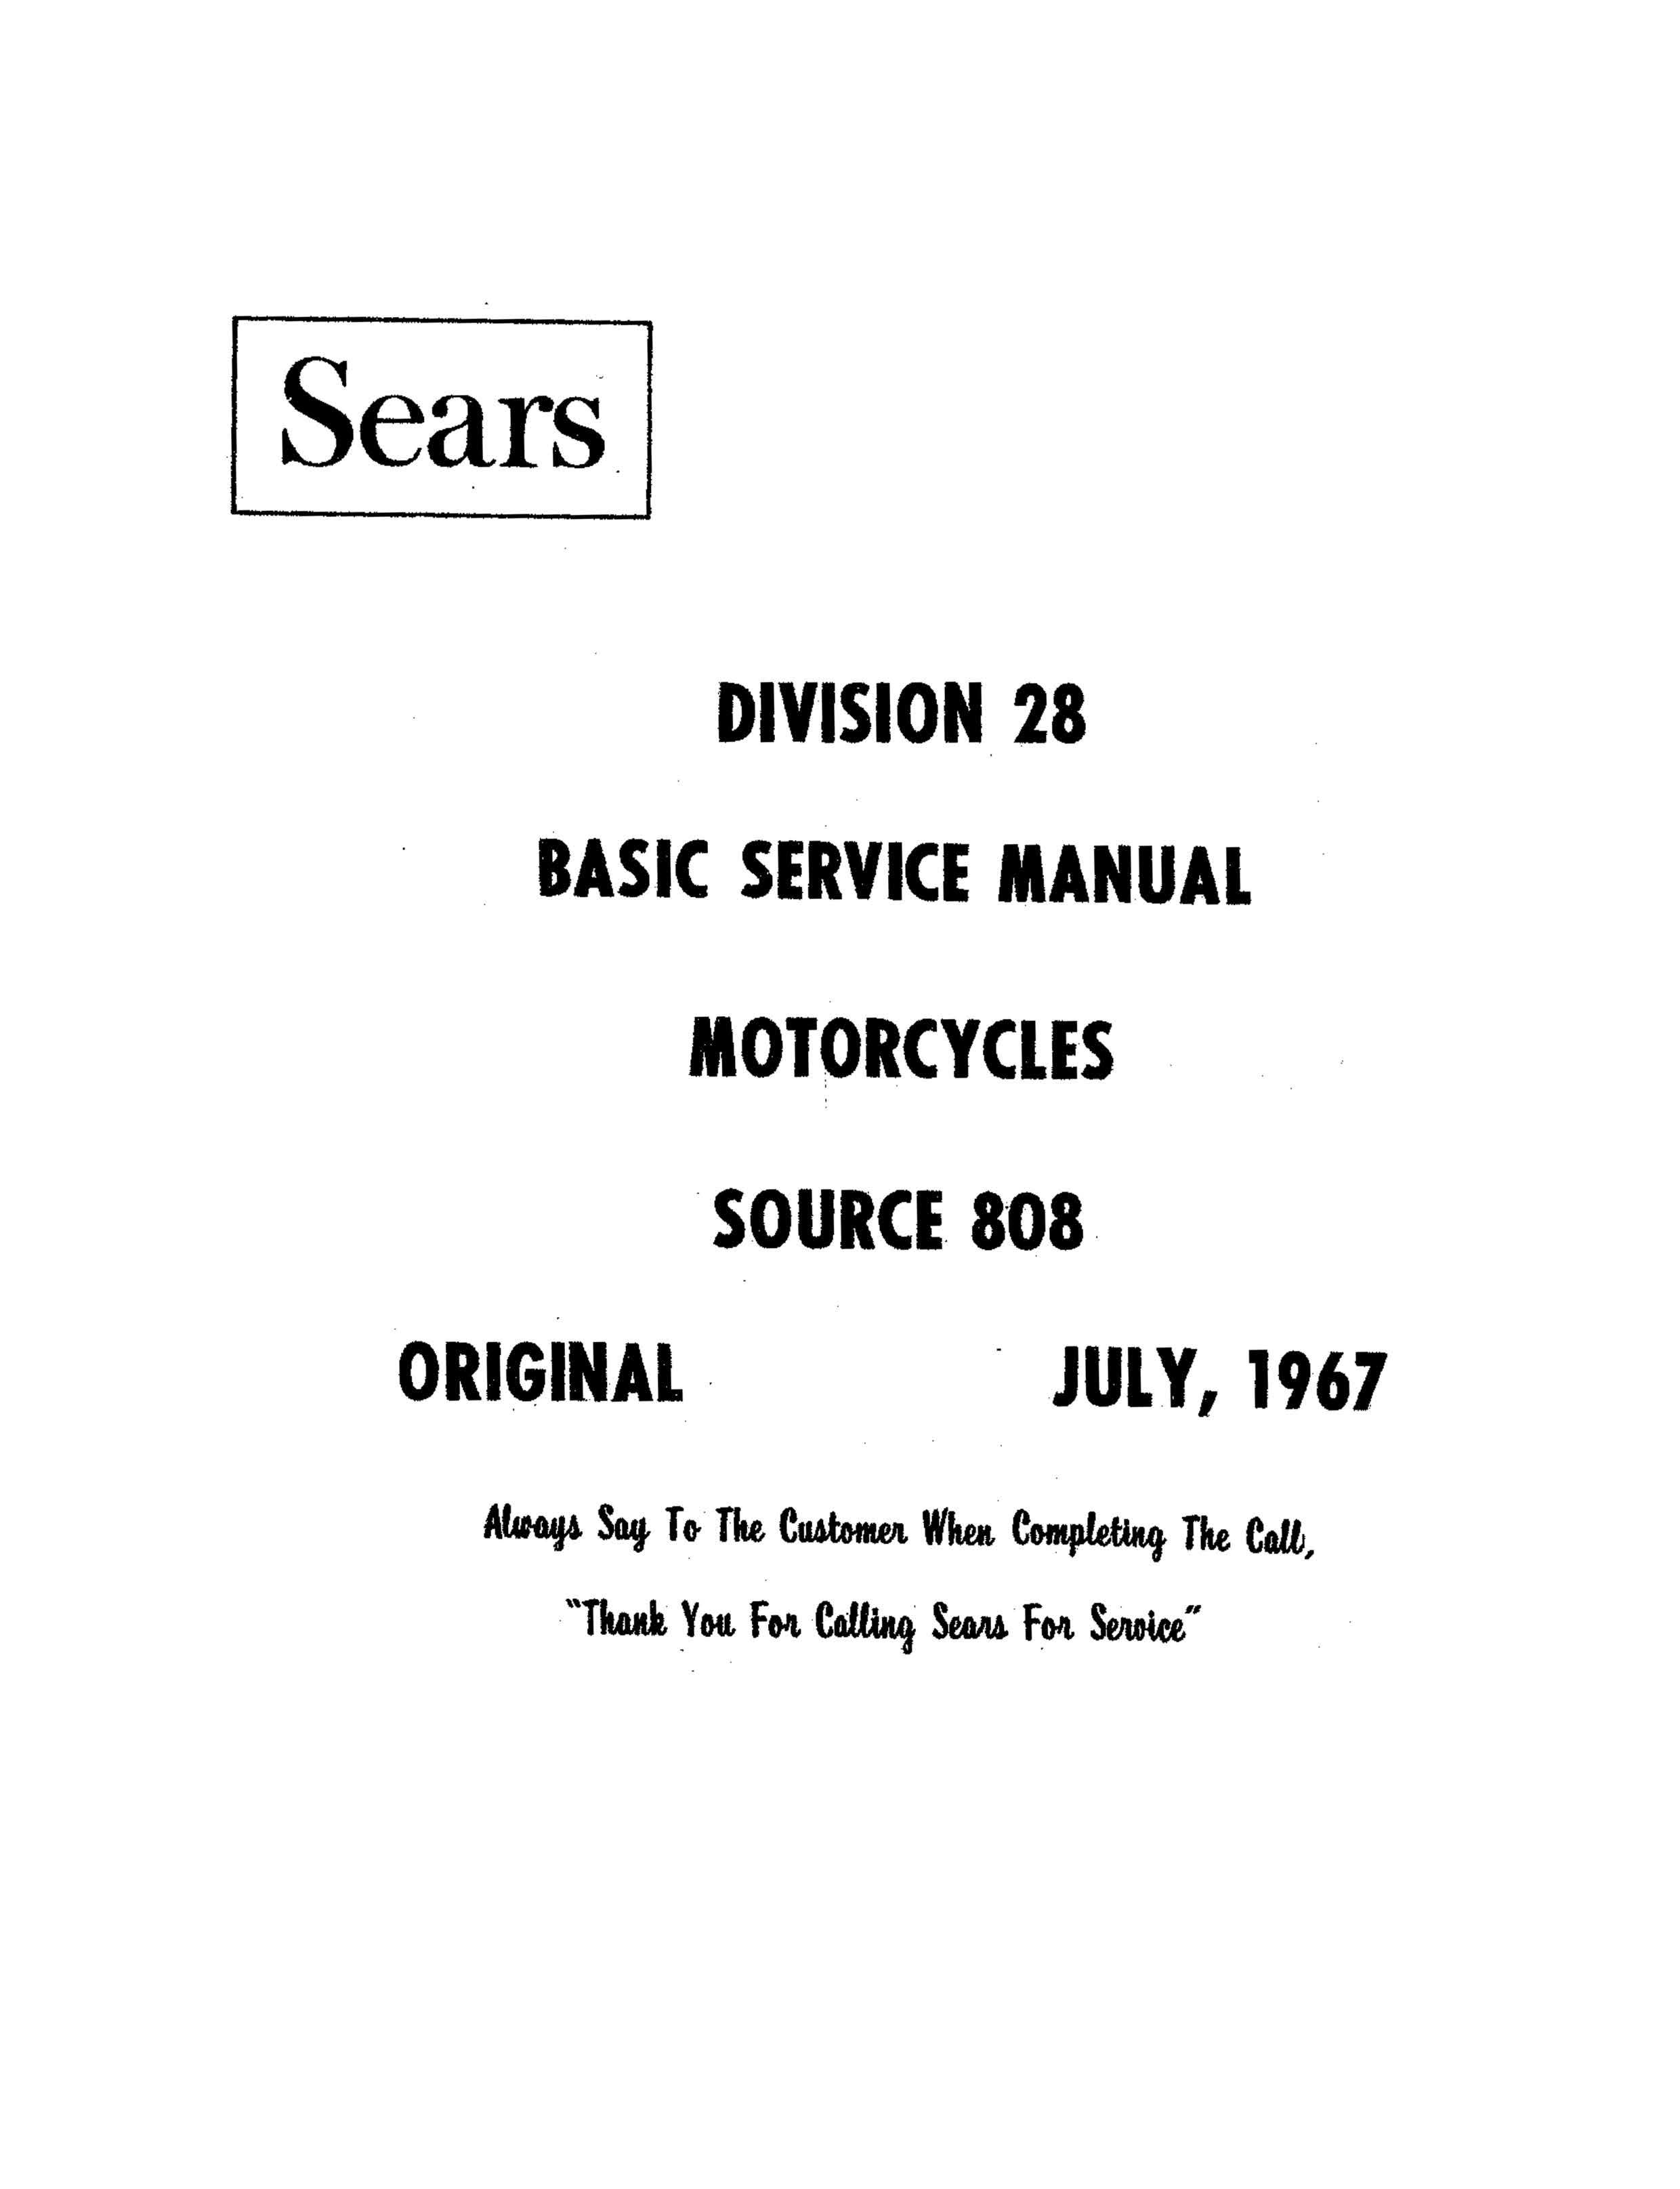 Sears 106SS Division 28 July 1967 Basic Service Manual